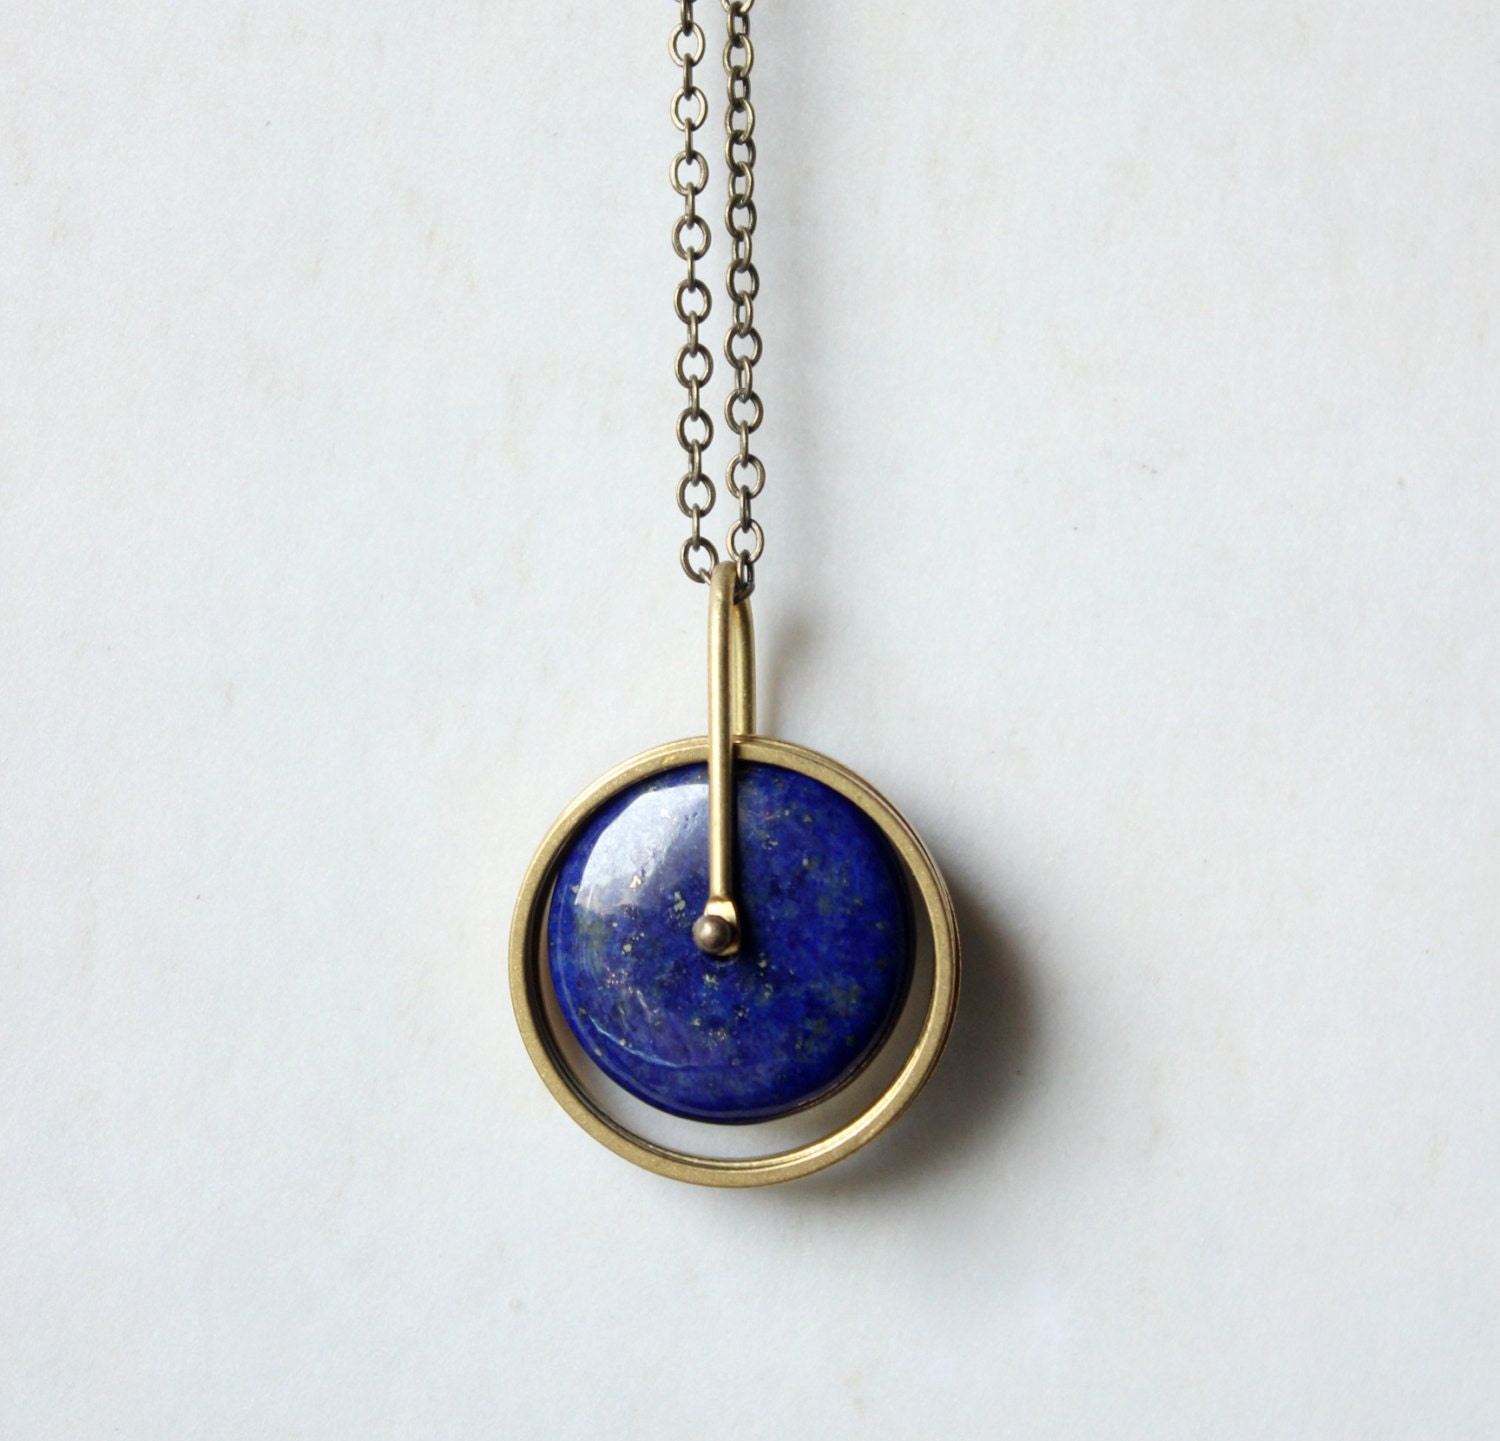 Lapis Lazuli Necklace Gold Lapis Necklace Lapis Lazuli Pendant. Jared Engagement Rings. Gold Line Stud Earrings. Suit Brooch. Pancreatic Cancer Bracelet. Gold Ring Bracelet. Crystal Beads Jewellery. Jacket Stud Earrings. Enhancer Pendant